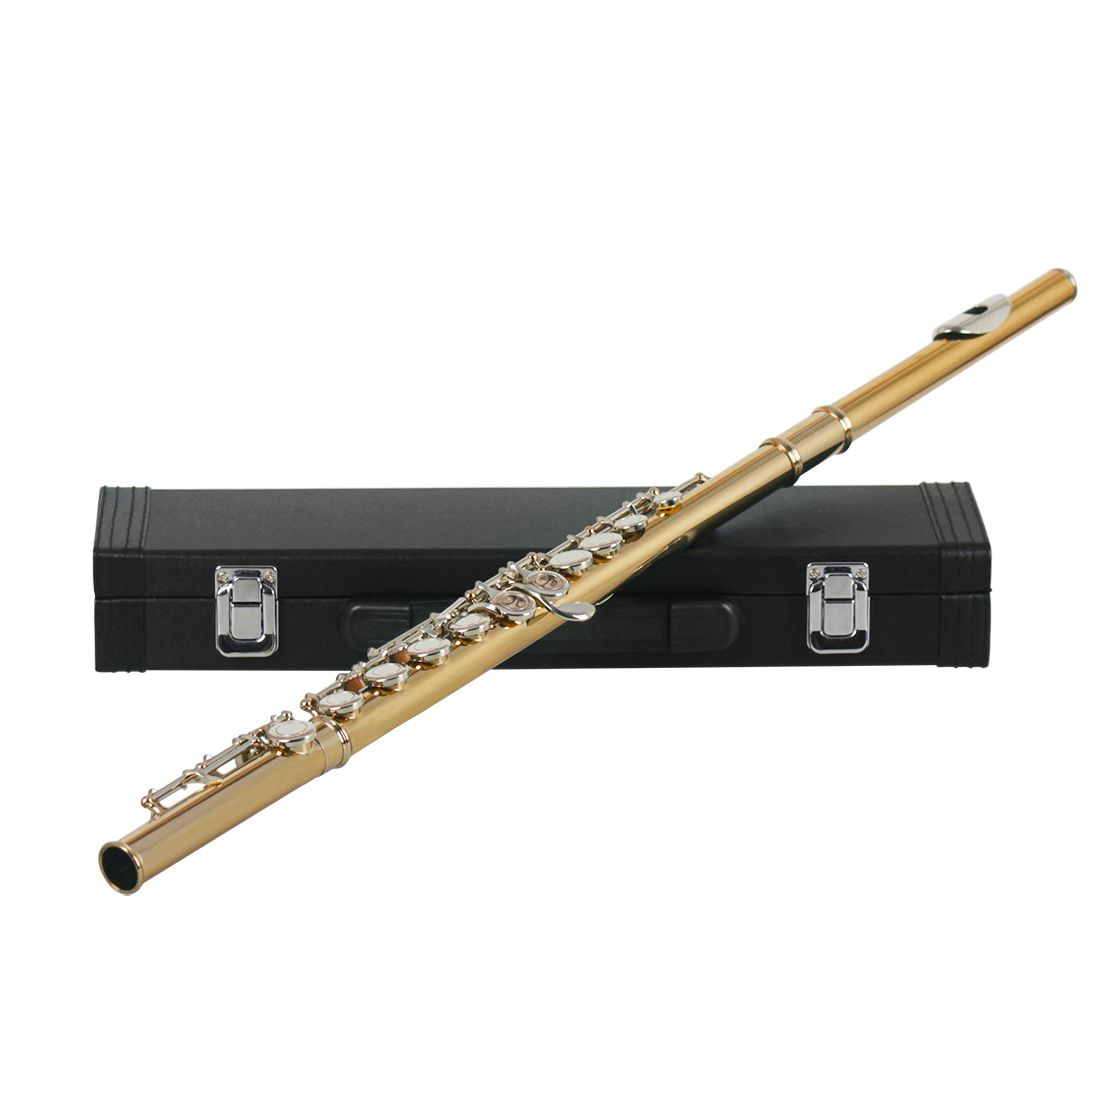 Western Concert Flute 16 Holes C Key Cupronickel Musical Instrument with Cleaning Cloth Stick Gloves Screwdriver Gold-MUSICWestern Concert Flute 16 Holes C Key Cupronickel Musical Instrument with Cleaning Cloth Stick Gloves Screwdriver Gold-MUSIC